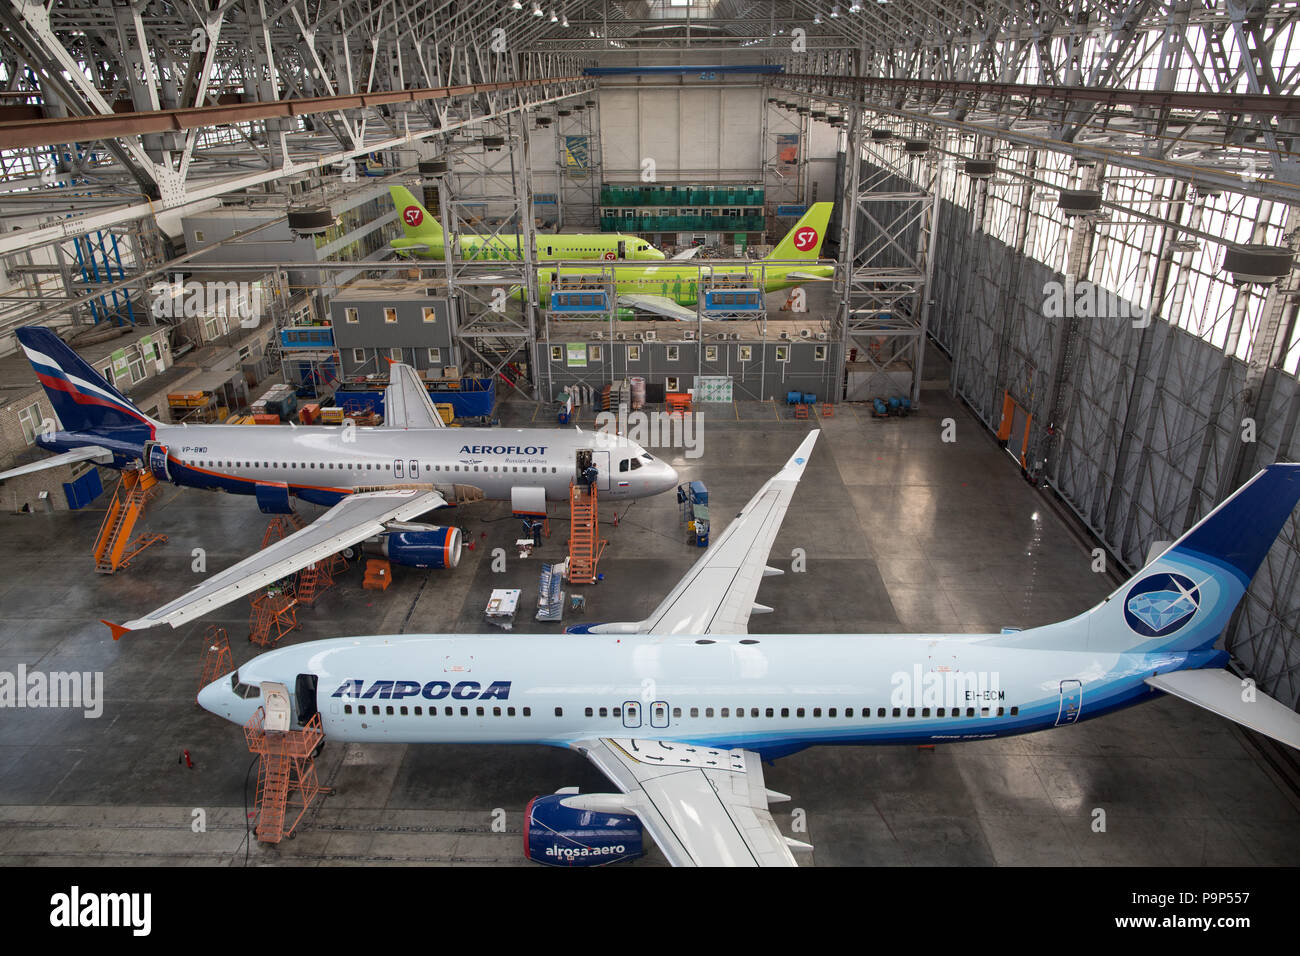 Civil jet airplanes of Alrosa, Aeroflot Russian Airlines and S7 Airlines pictured inside the S7 Engineering maintenance facility located at Domodedovo - Stock Image